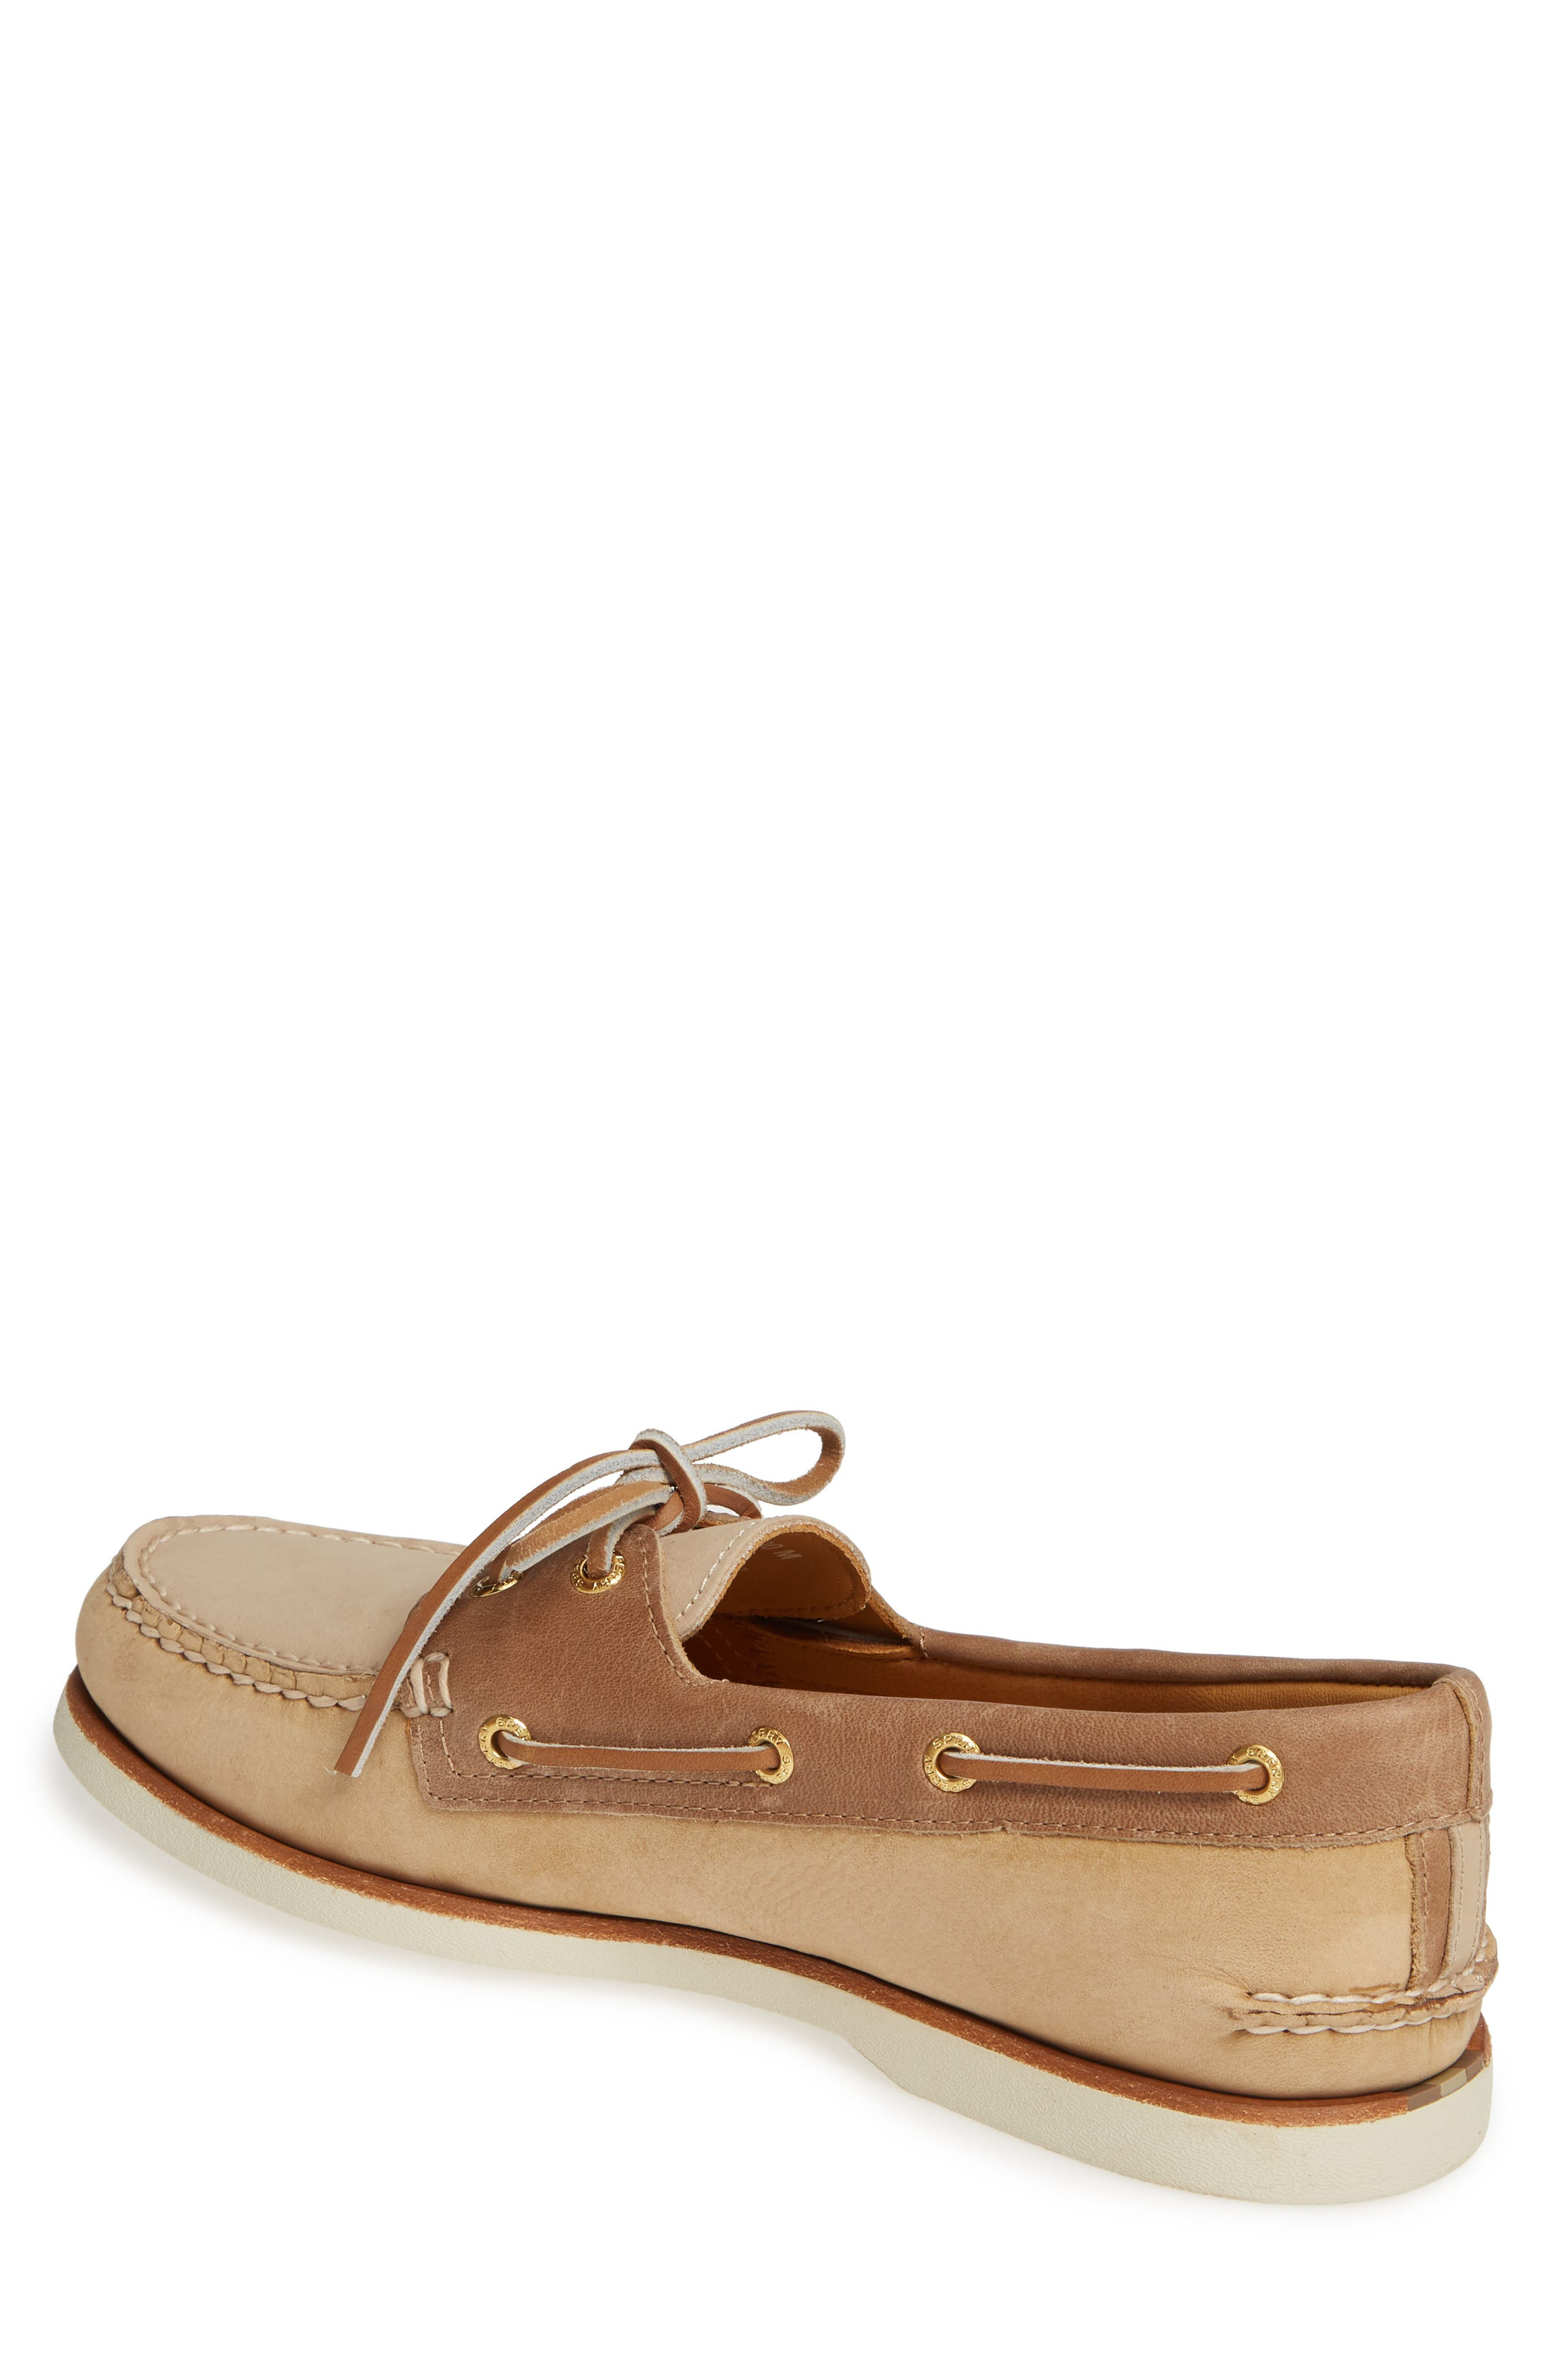 SPERRY, Gold Cup Authentic Original Boat Shoe, Alternate thumbnail 2, color, TAN/ BROWN/ CREAM LEATHER